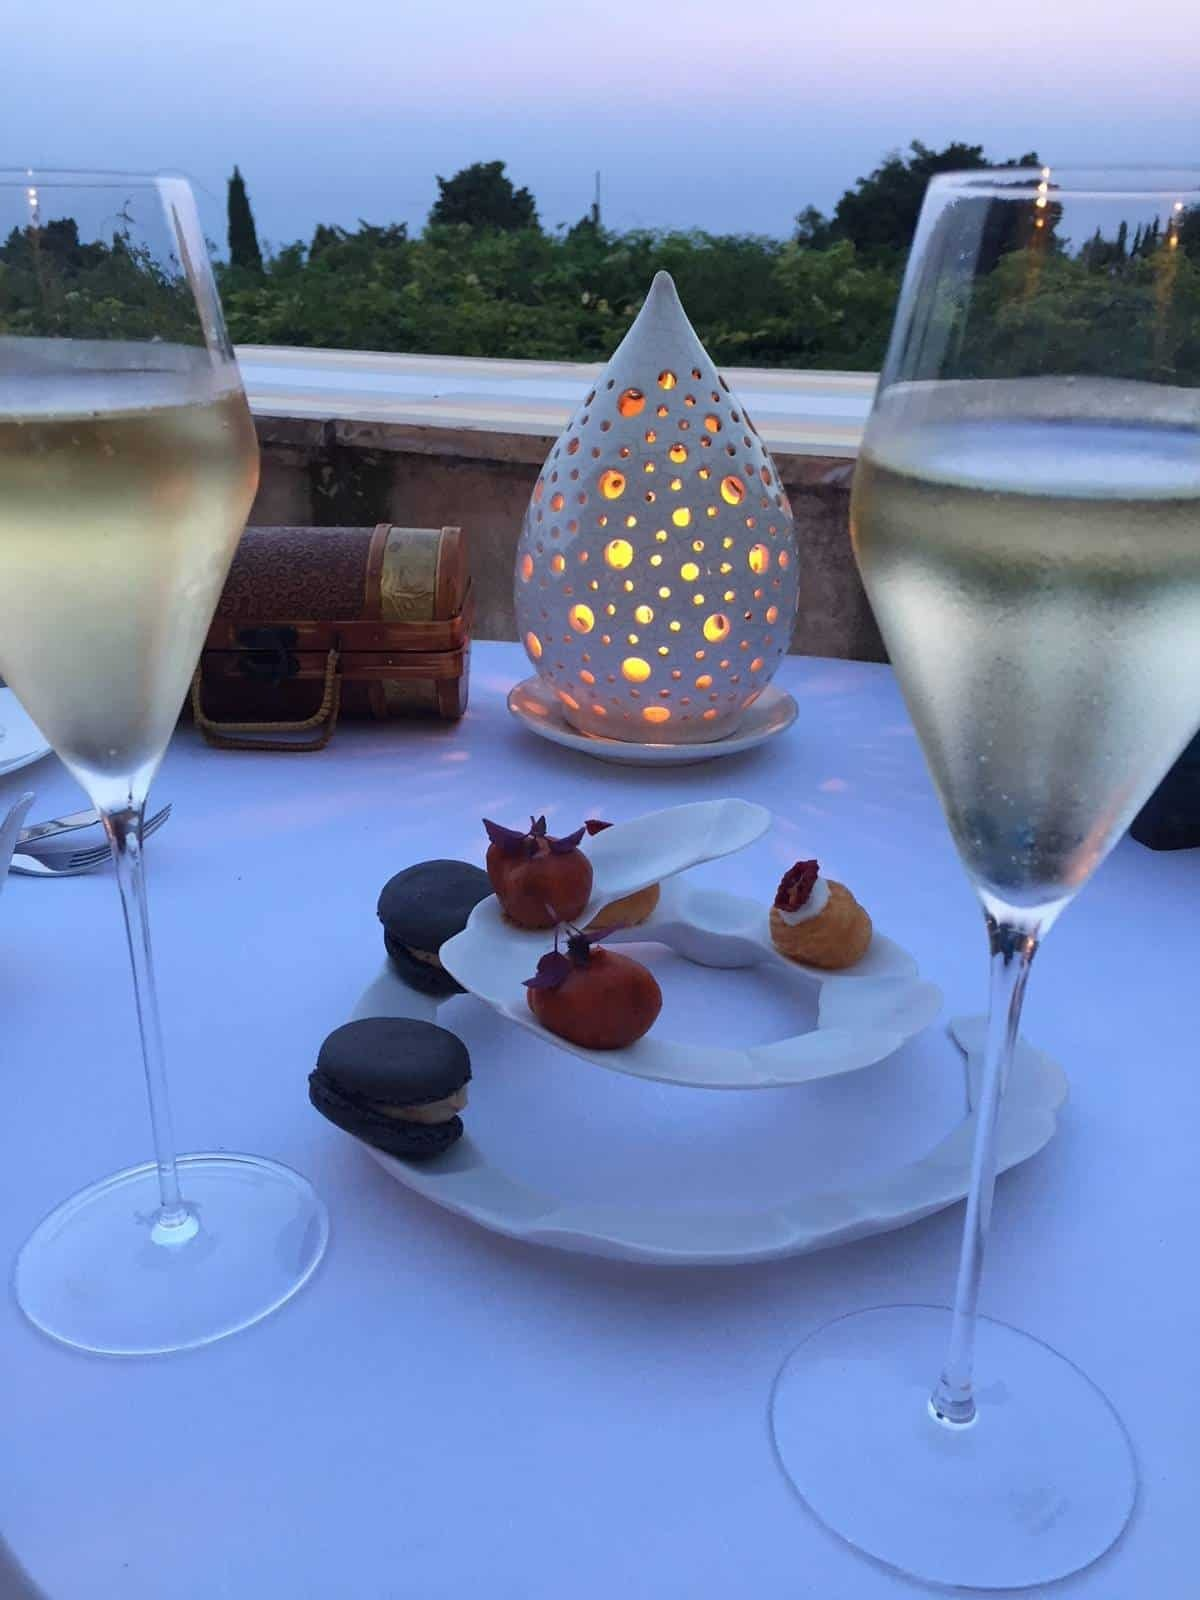 The most magical evening at Villa Cimbrone in Ravello